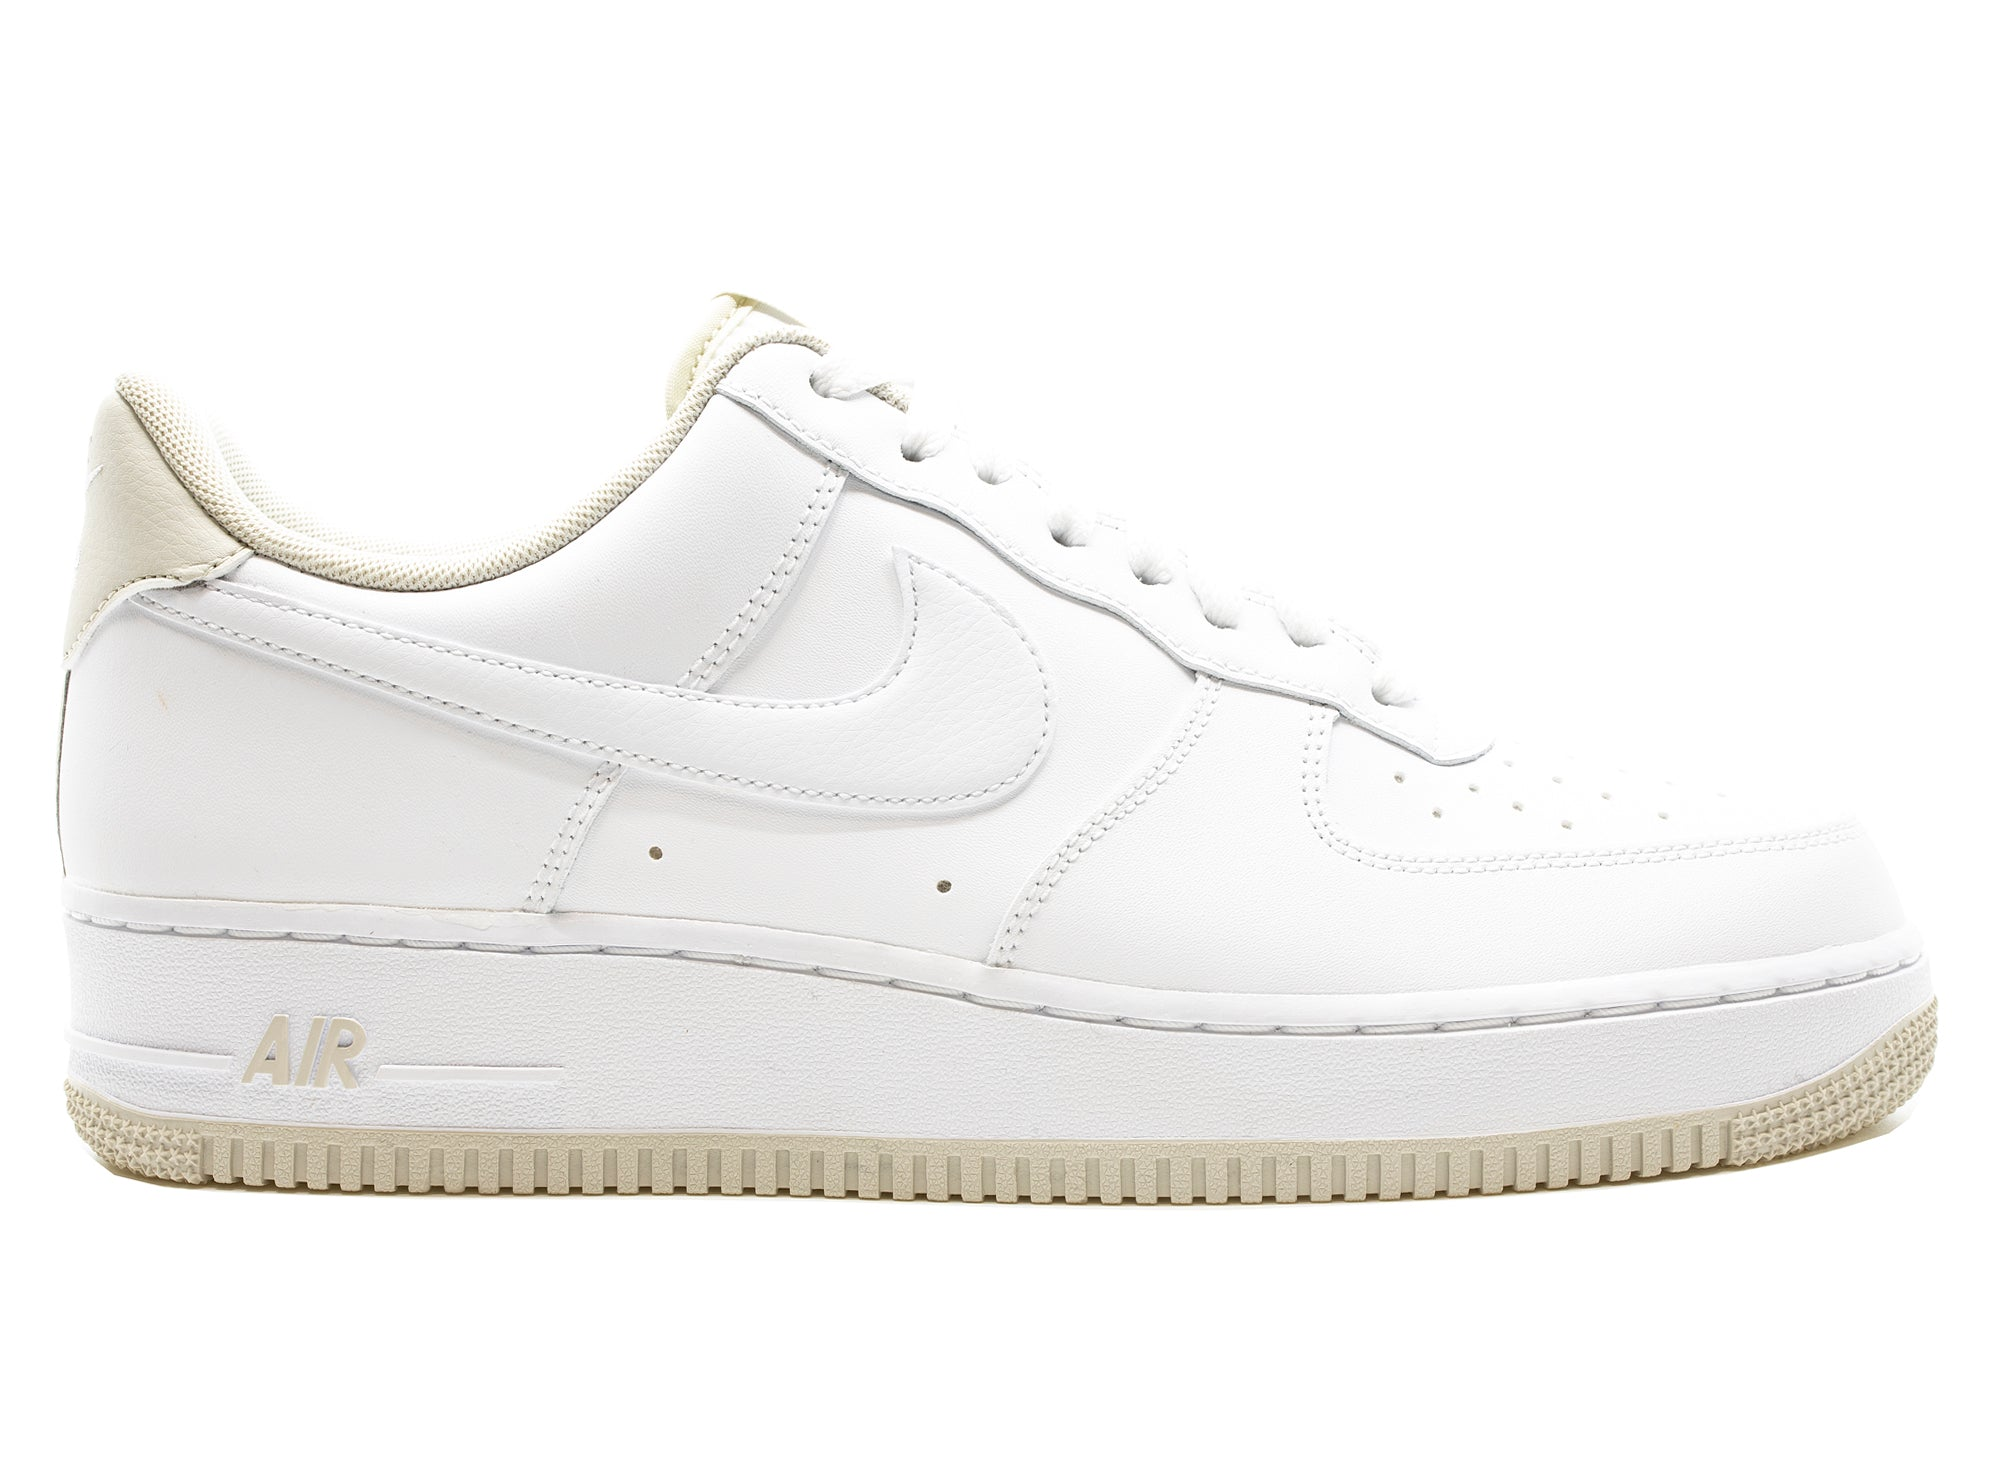 Nike Air Force 1 '07 'Light Bone'